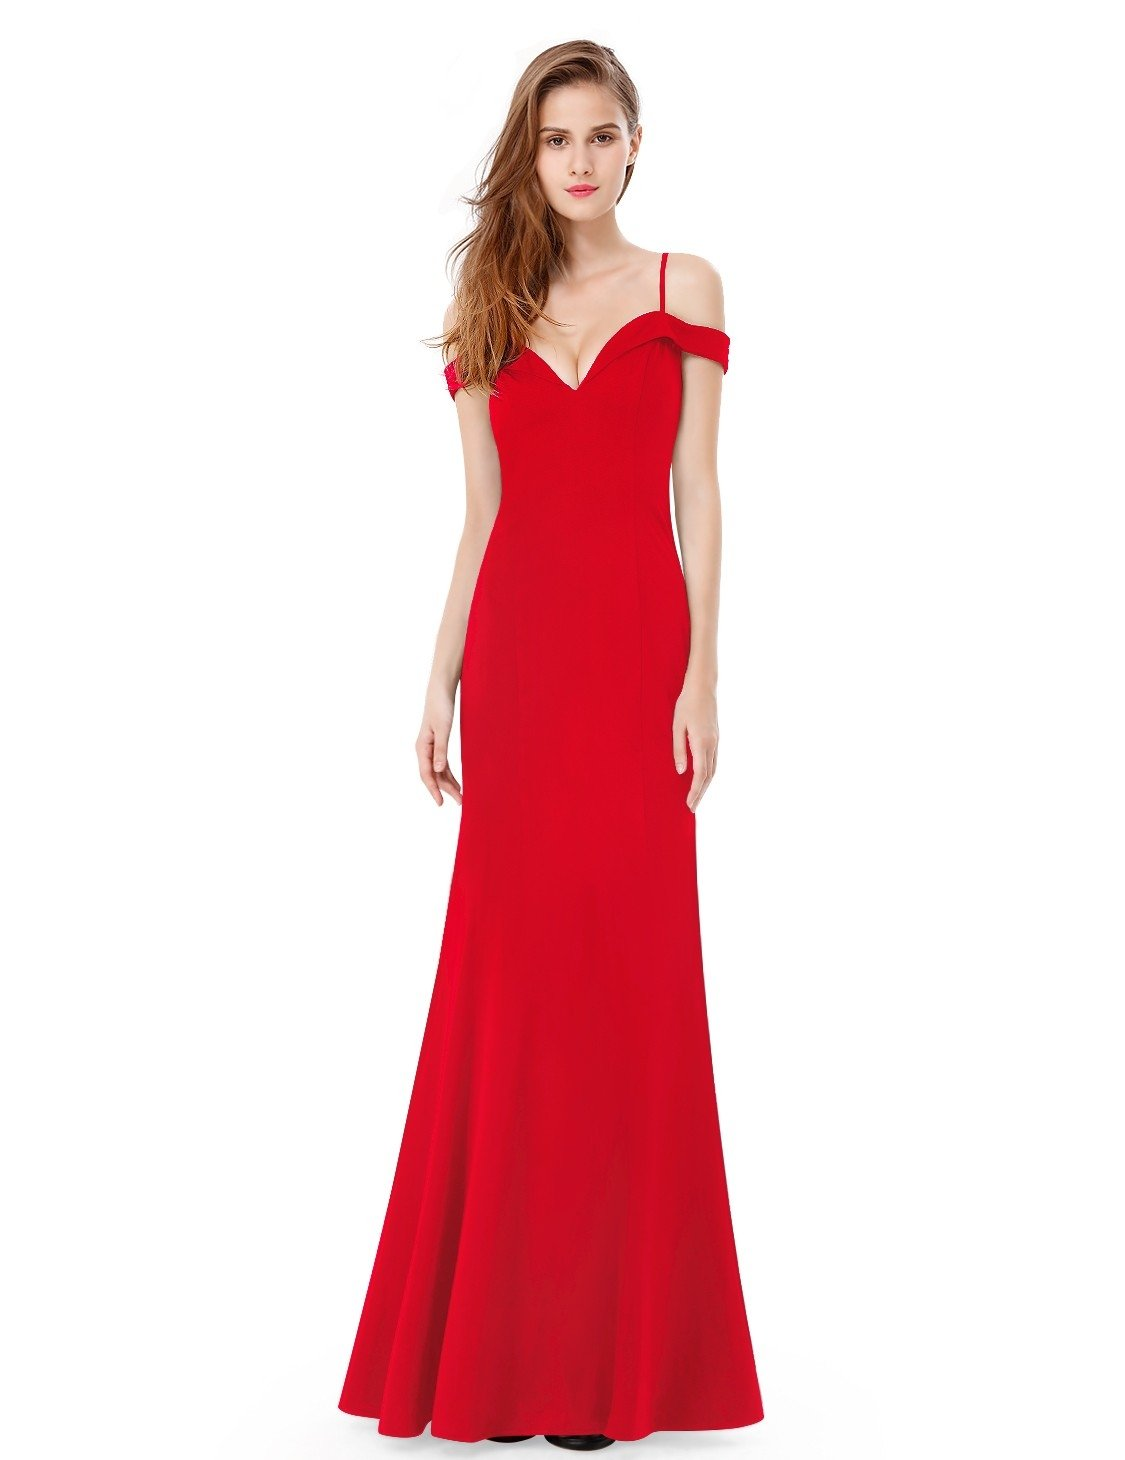 red-bridesmaid-dress-style-4